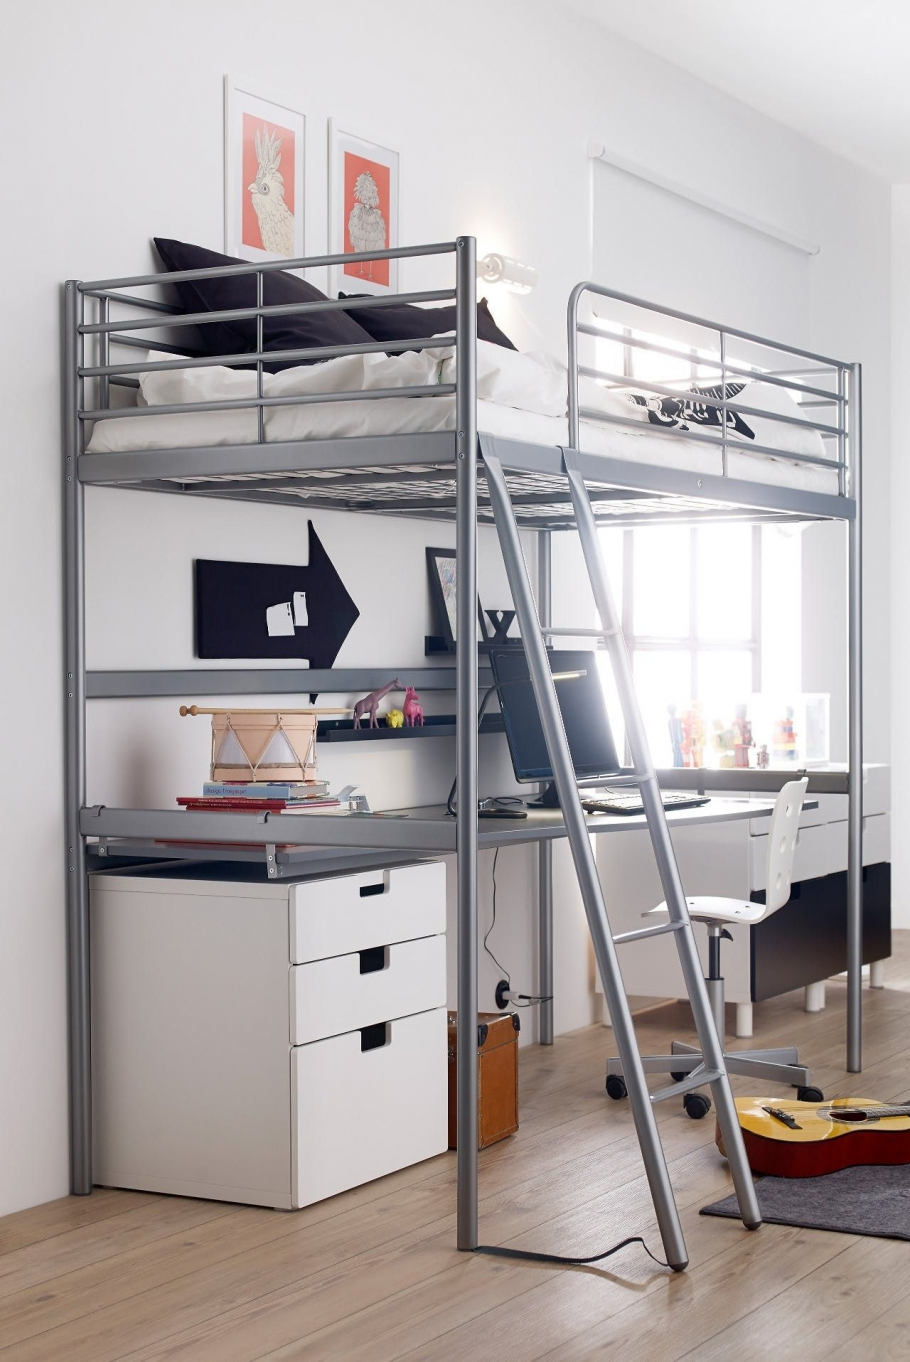 94 Minimalist Bunk Beds Design Ideas - Tips for Designing the Space-10151